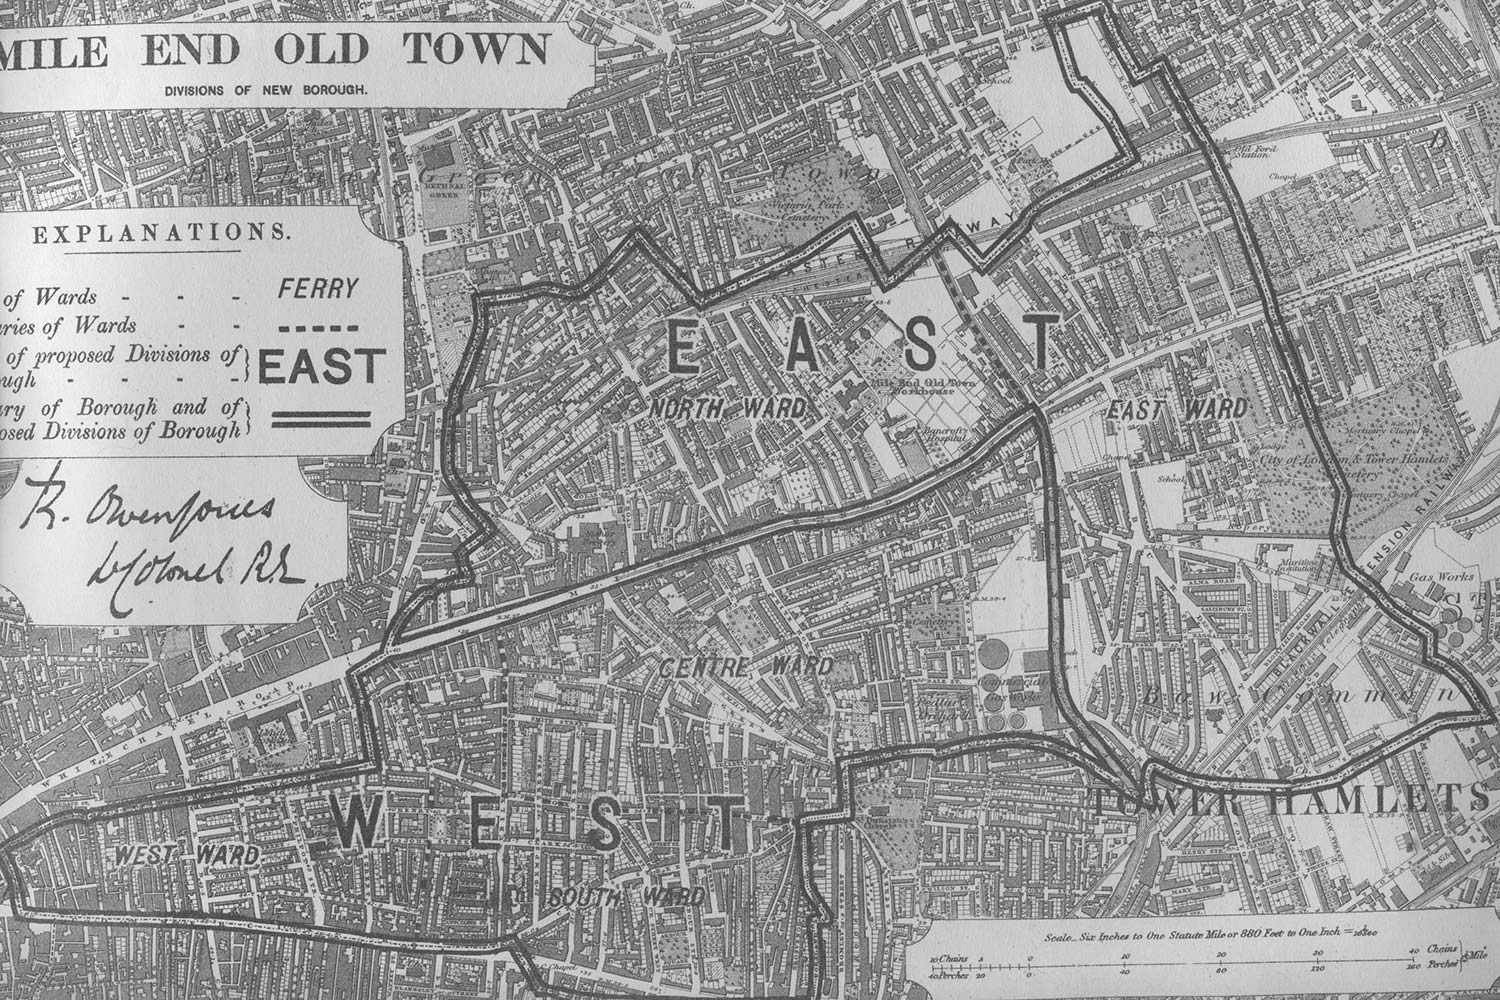 Mile end divisions in 1885